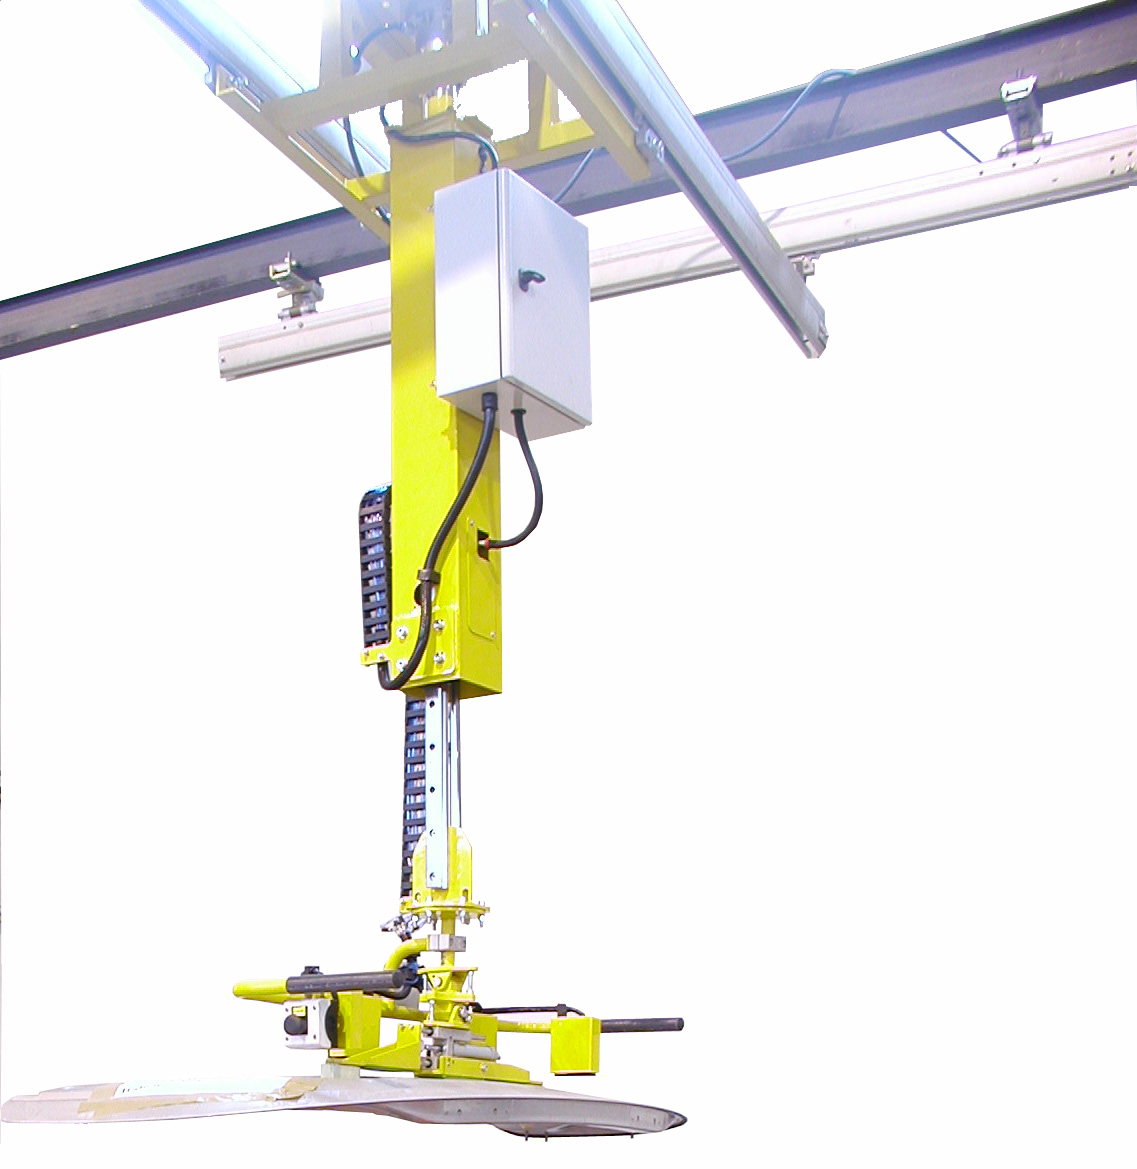 Lifting Boxes For Lift Assists : Lift assist devices lifting handling equipment overhead